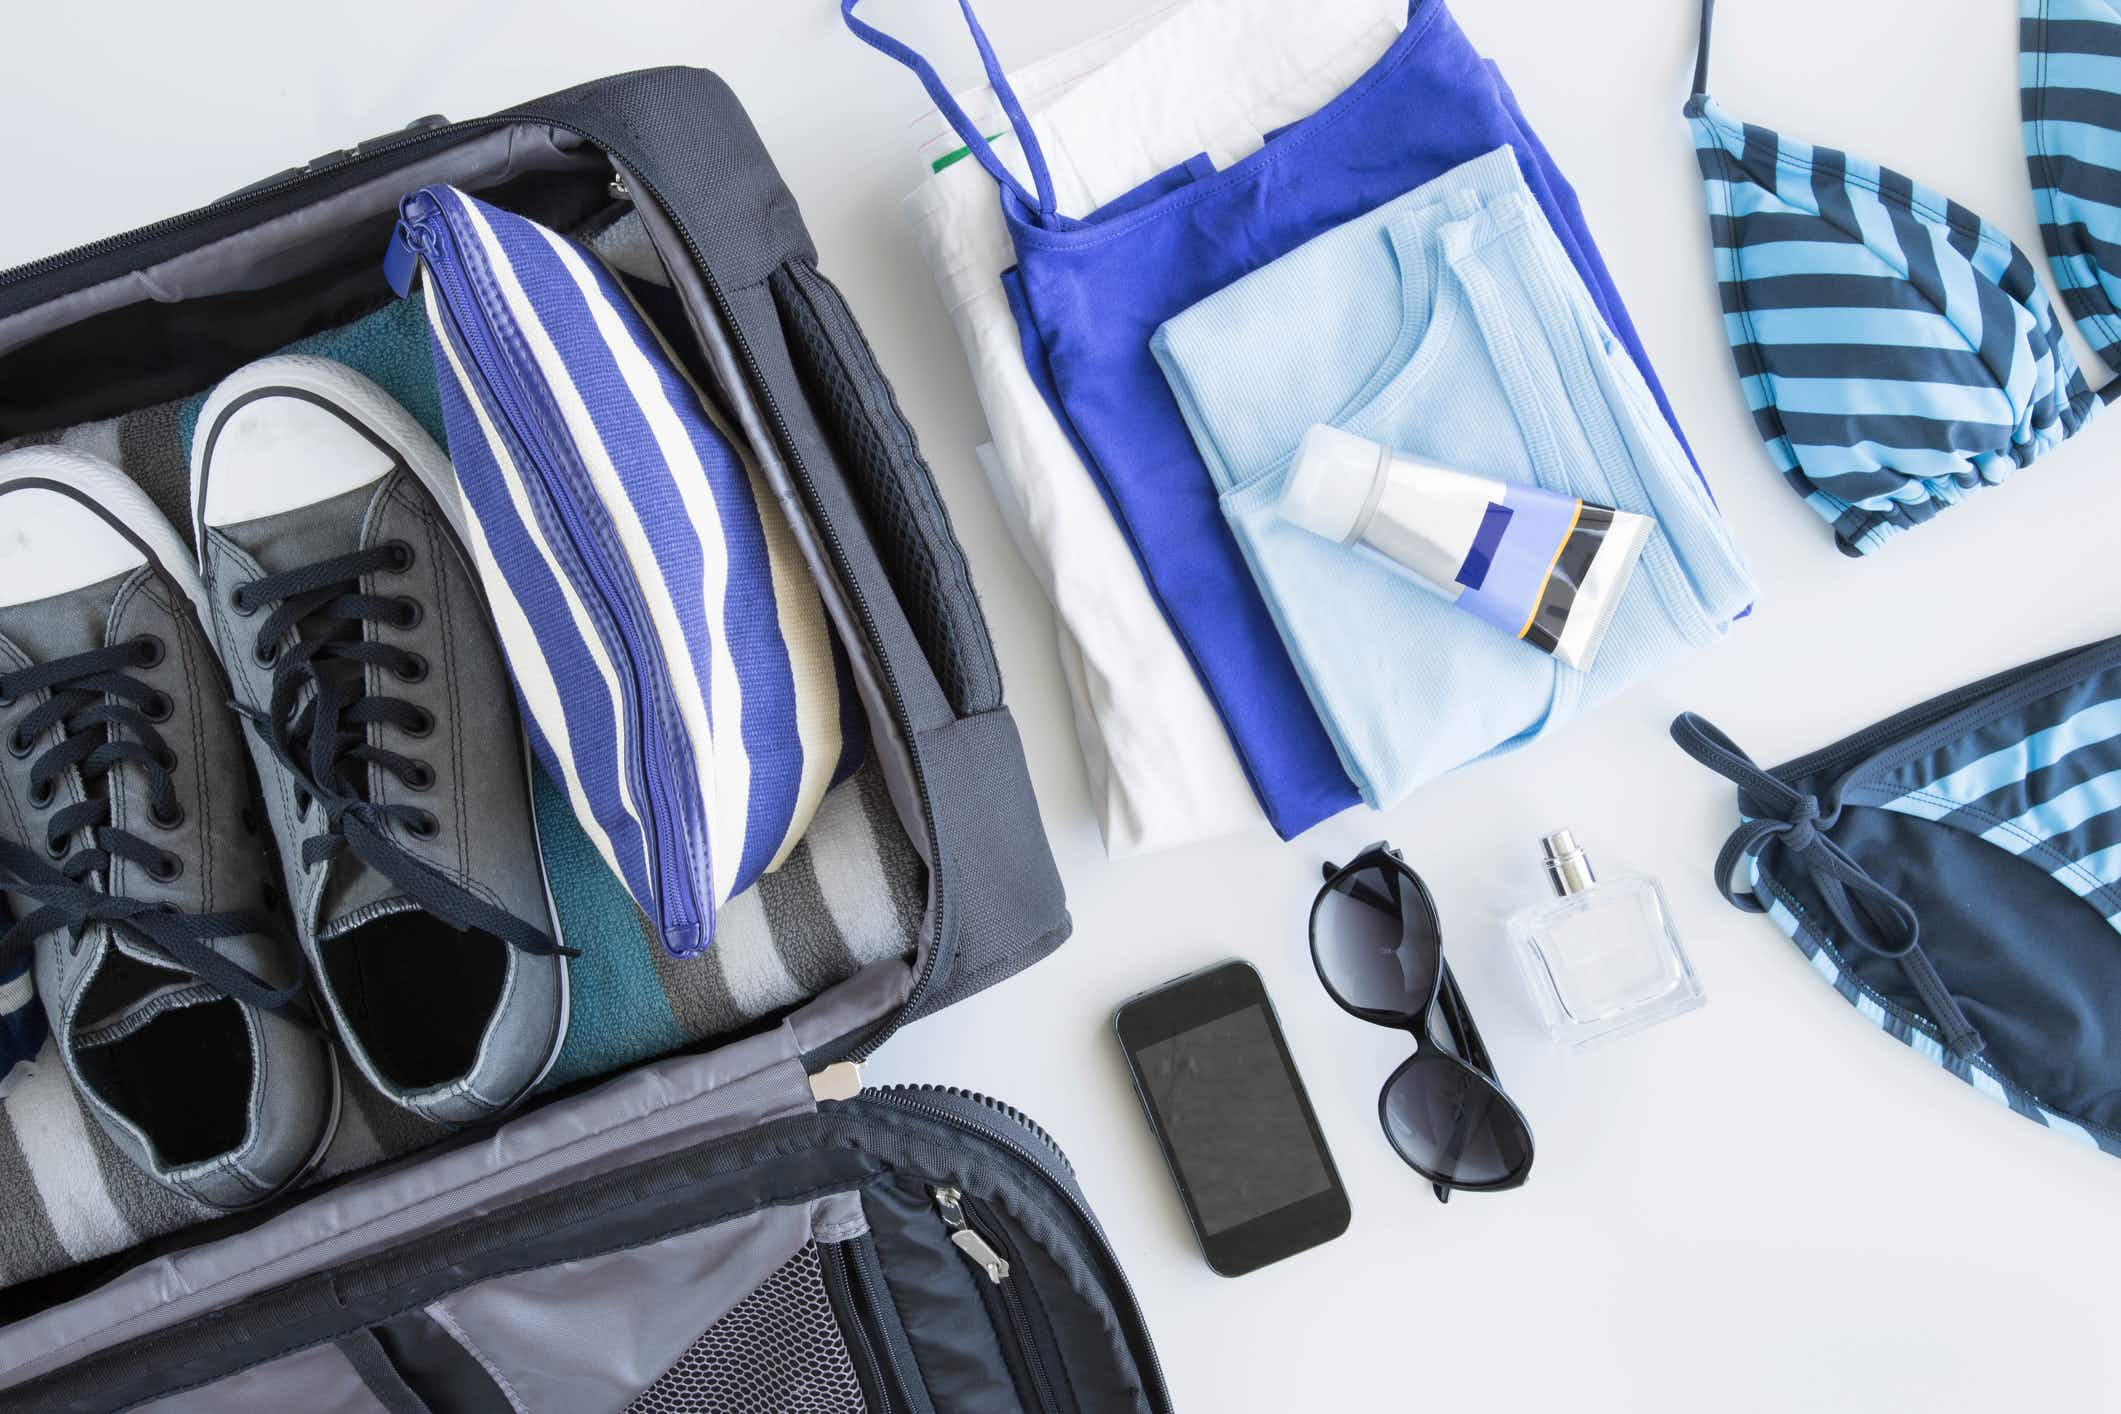 Add these seven things to your suitcase to make holiday packing a dream